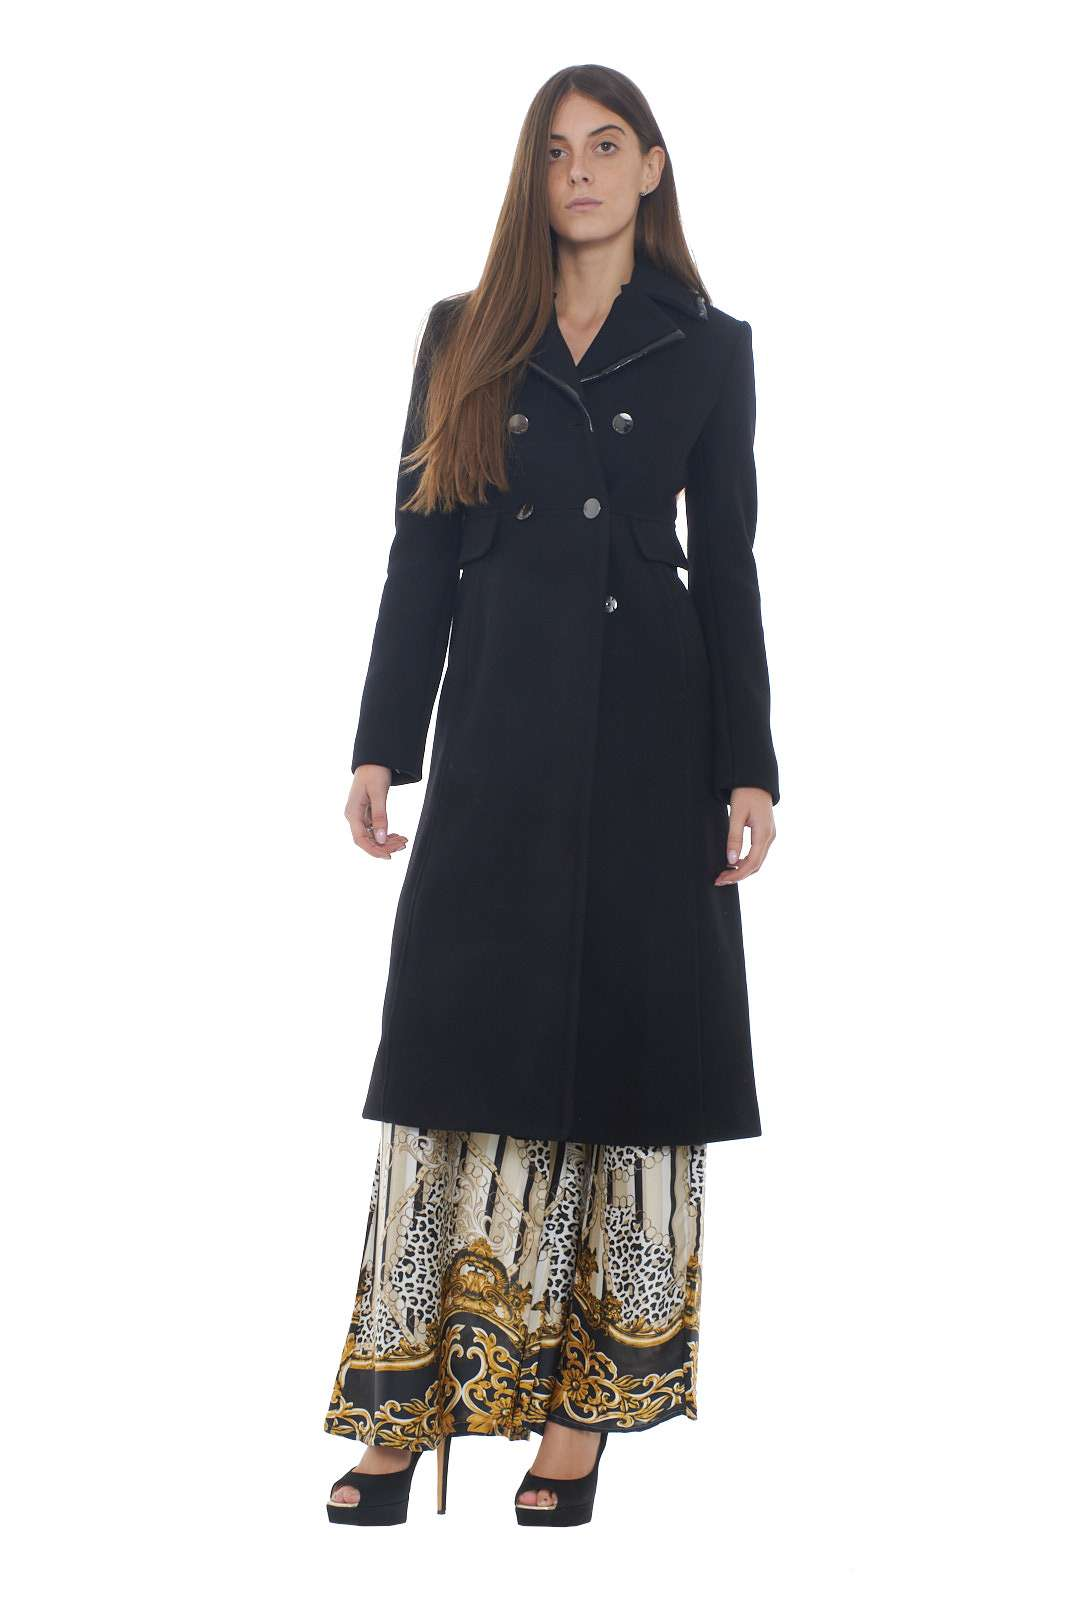 https://www.parmax.com/media/catalog/product/a/i/AI-outlet_parmax-cappotto-donna-Pinko-1g14d9-A.jpg